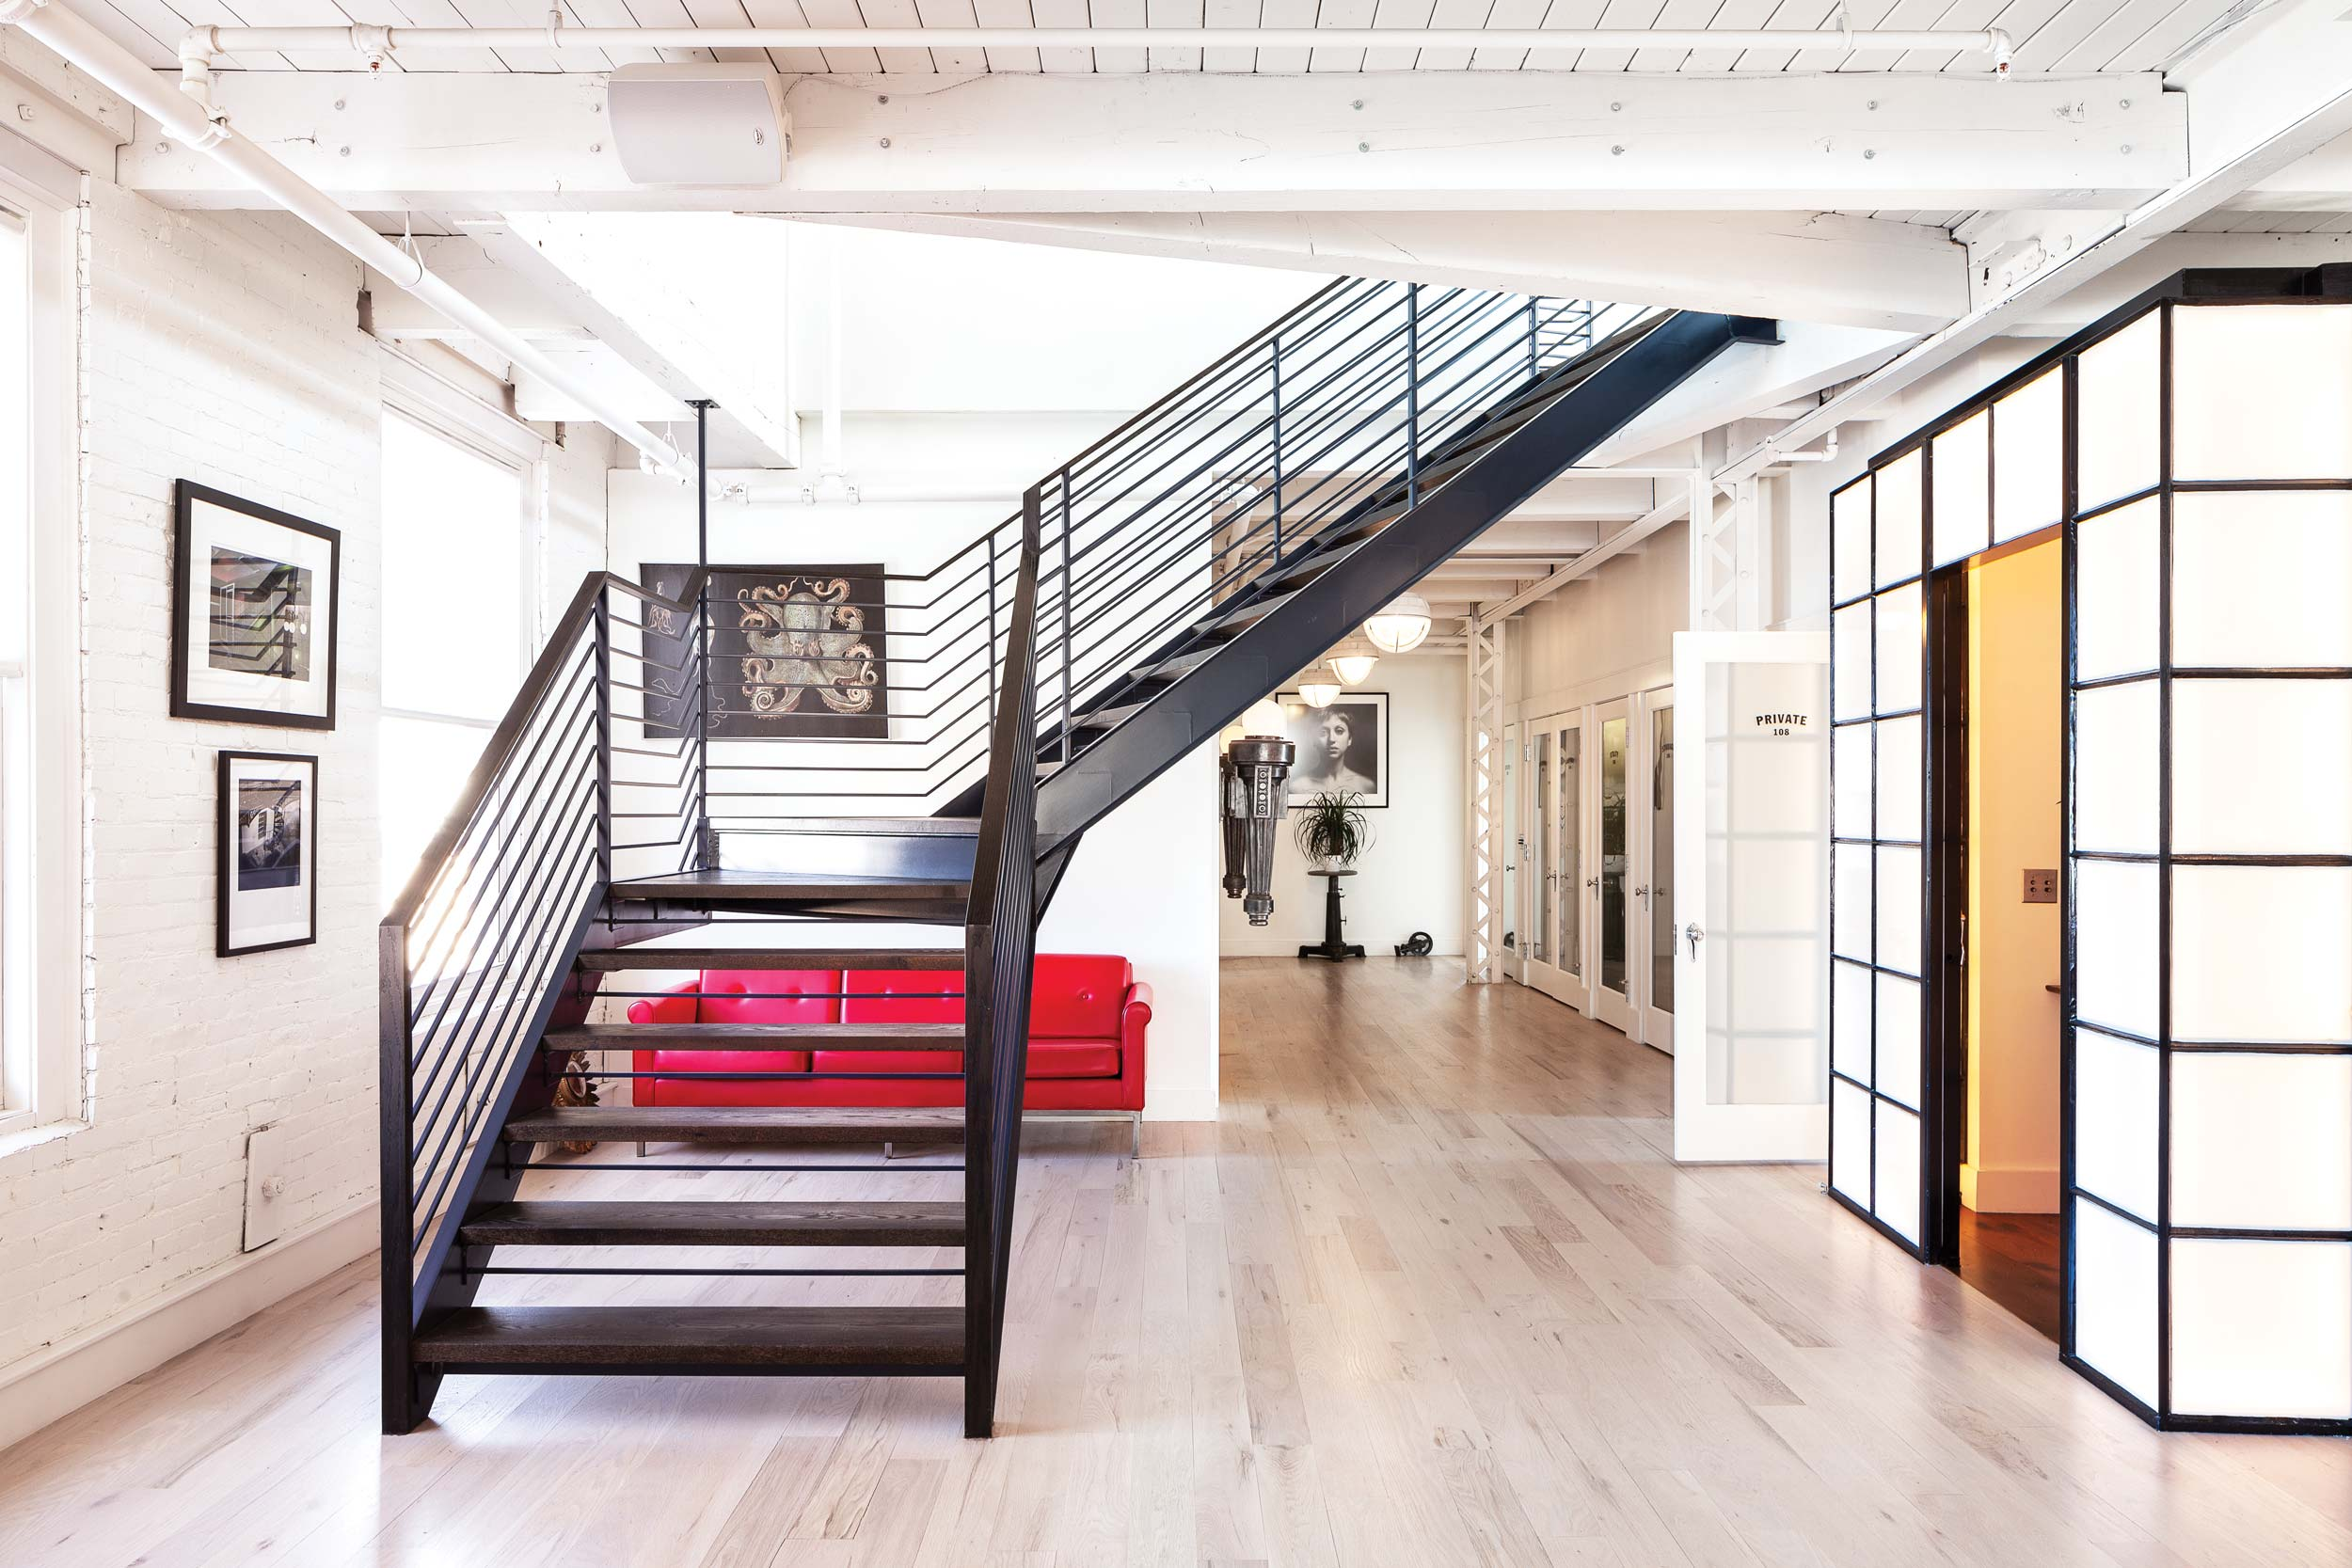 The hockey stick-shaped winder staircase, made of dark blue steel and blackened oak treads, has particularly fine connections, in lieu of posts at the staircase's flying corners.